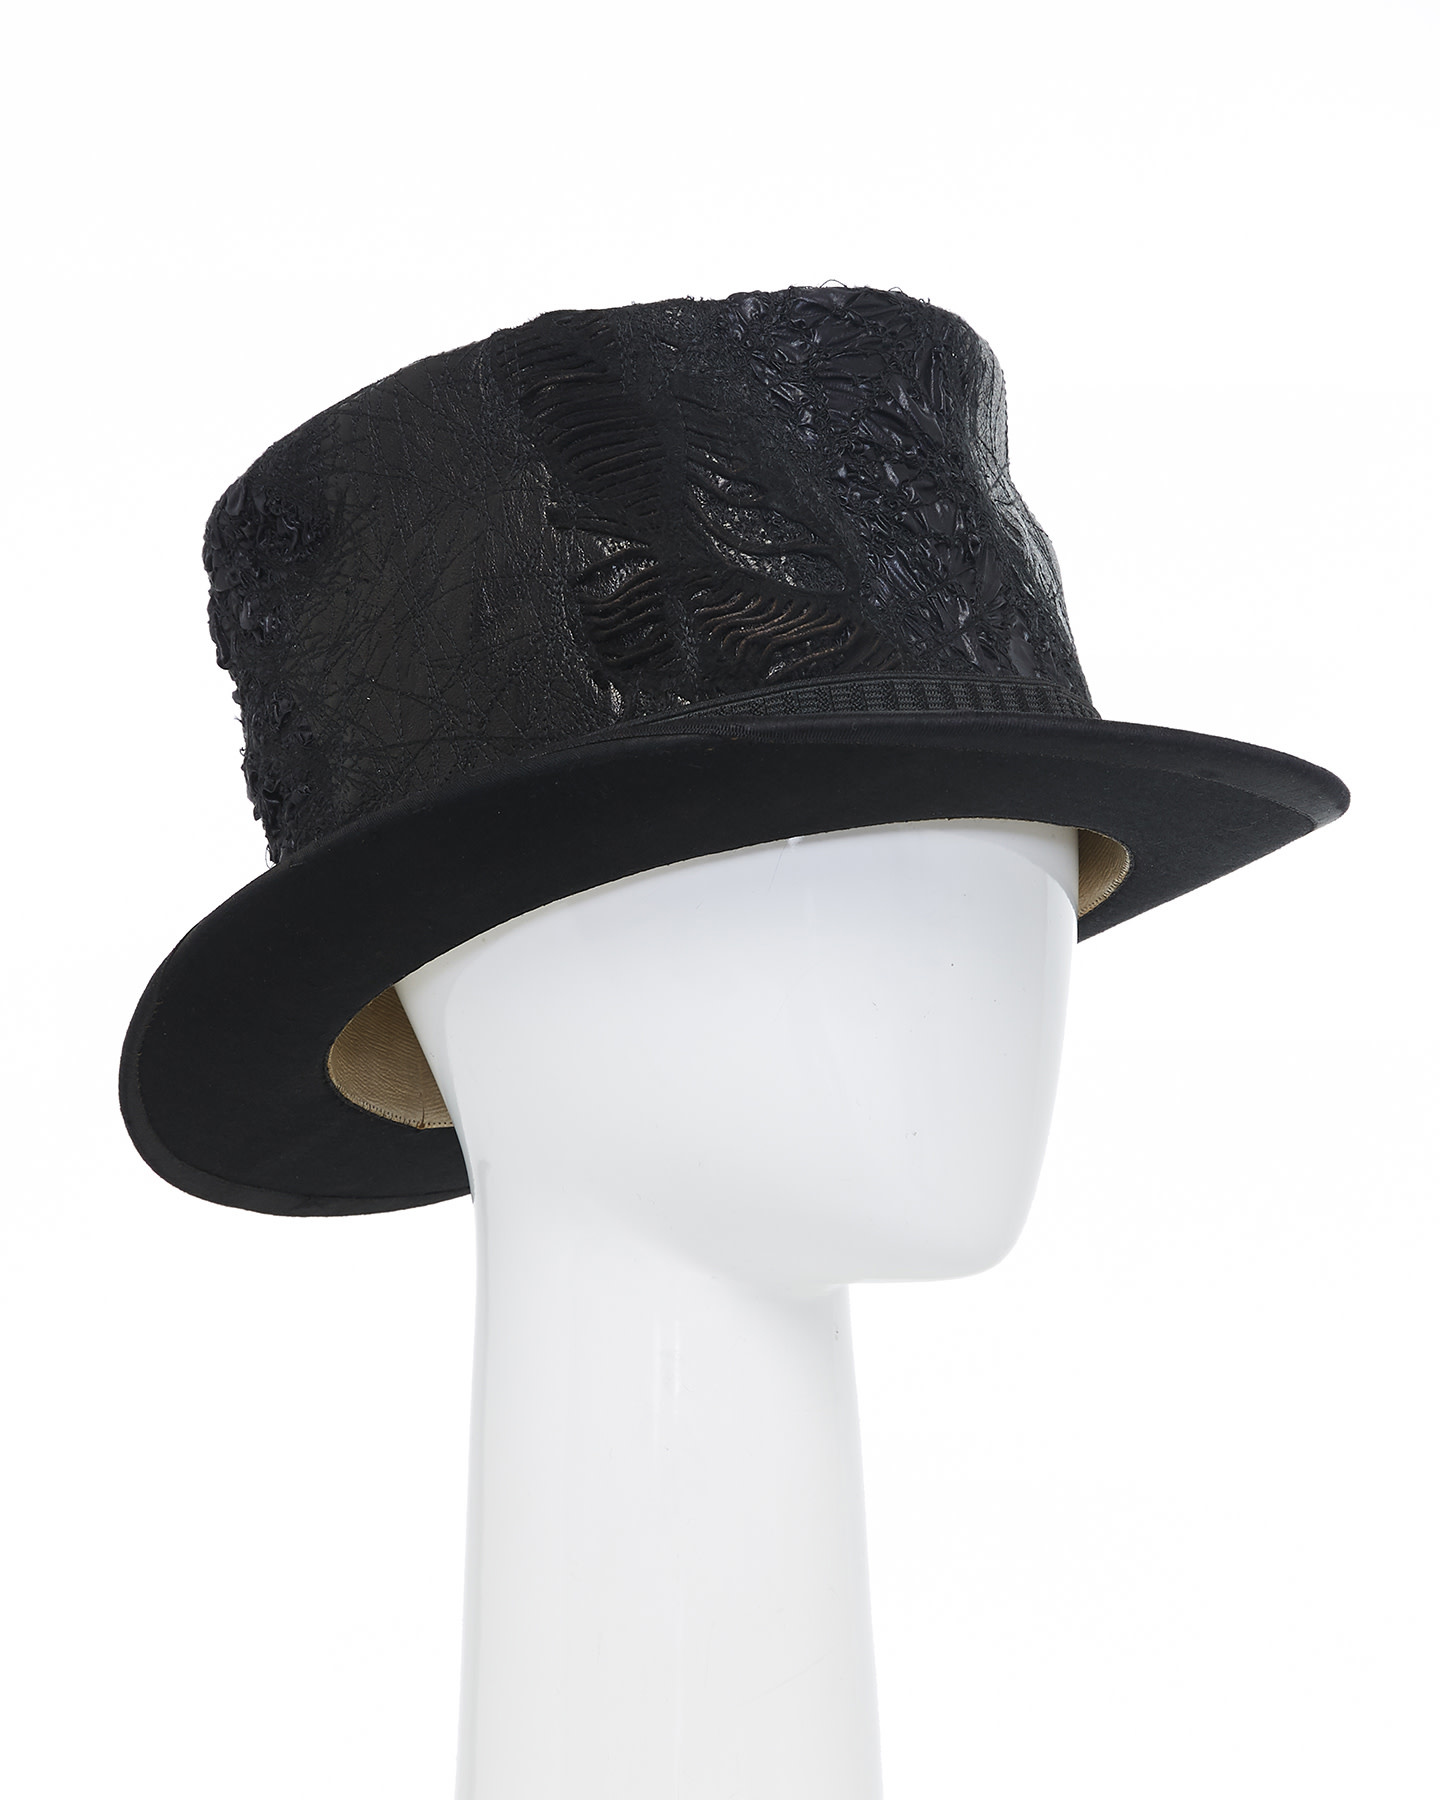 UPCYCLED RE-EMBROIDERED LEATHER TOP HAT V.2